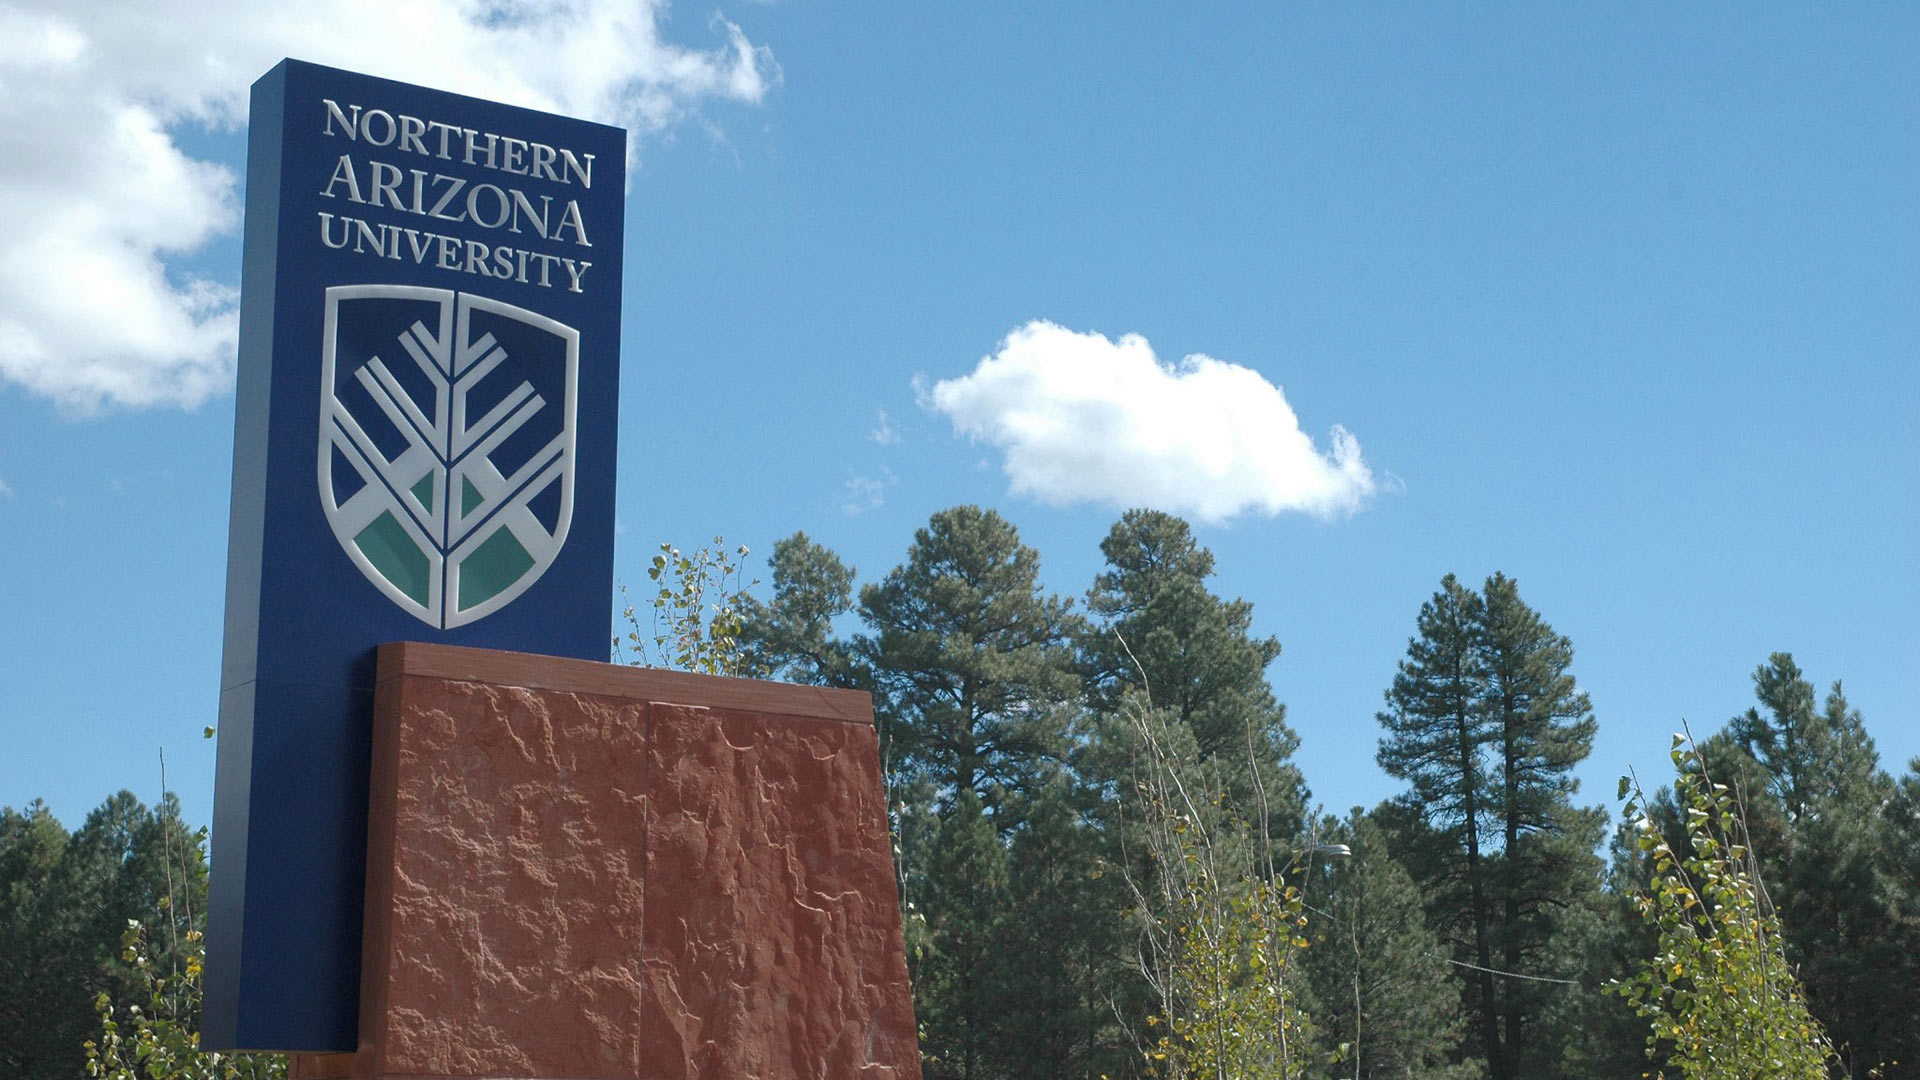 Northern Arizona University in Flagstaff.